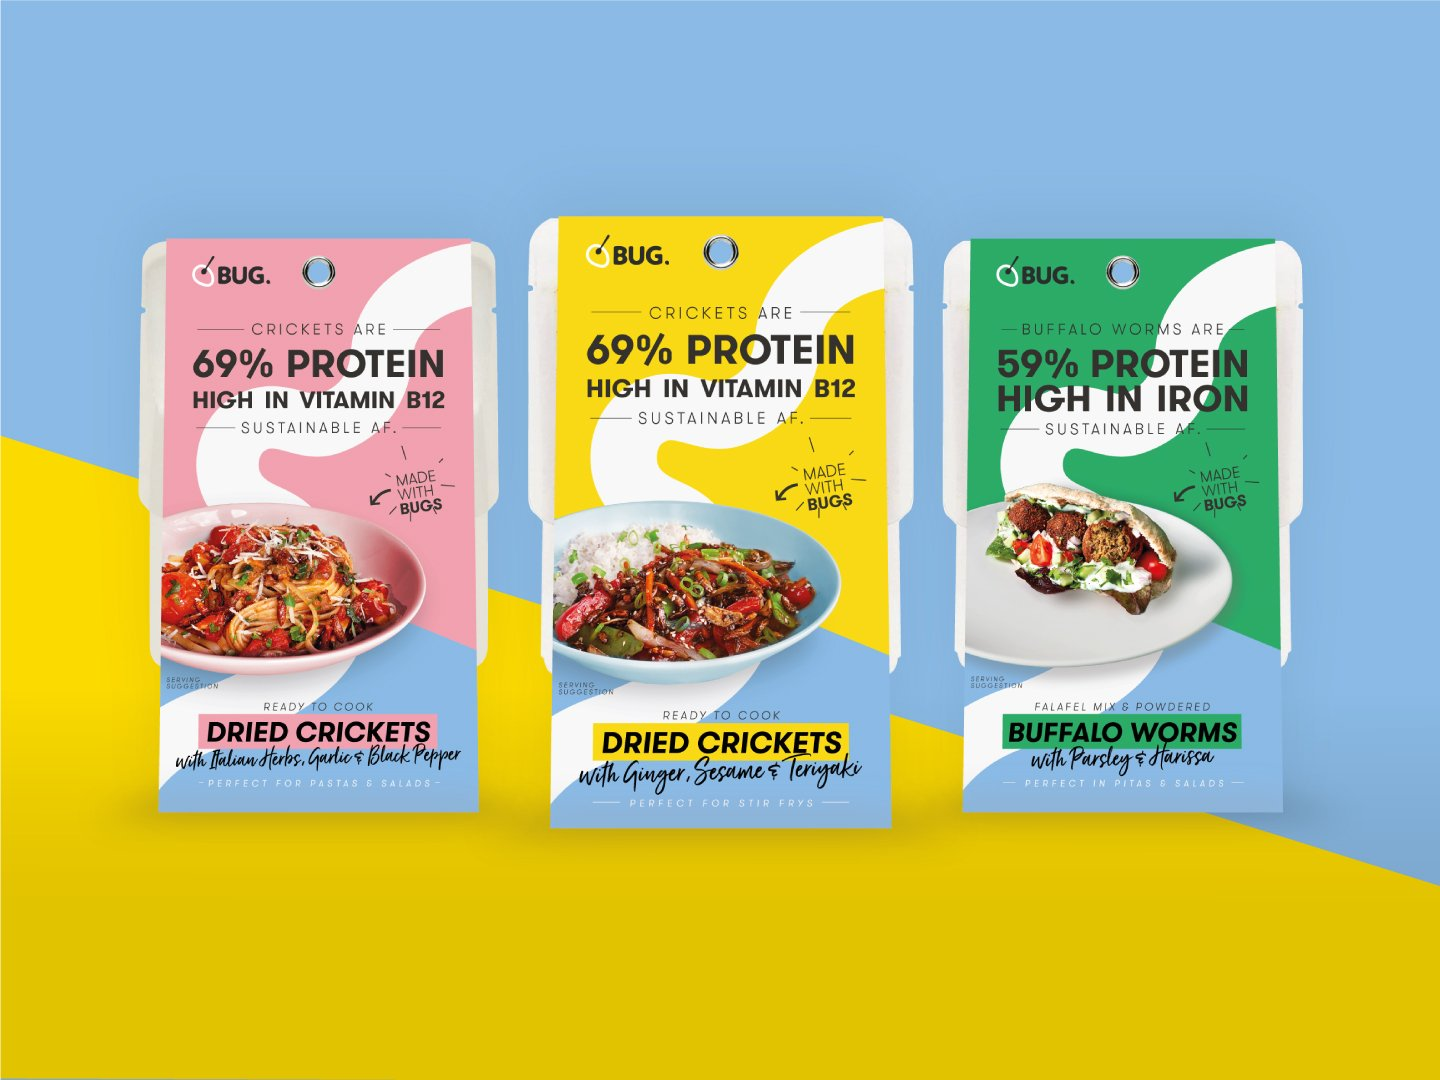 Three BUG edible insects meals kits in a row: crickets with italian herbs, crickets with ginger, sesame and teriyaki and buffalo worms with parsley and harissa